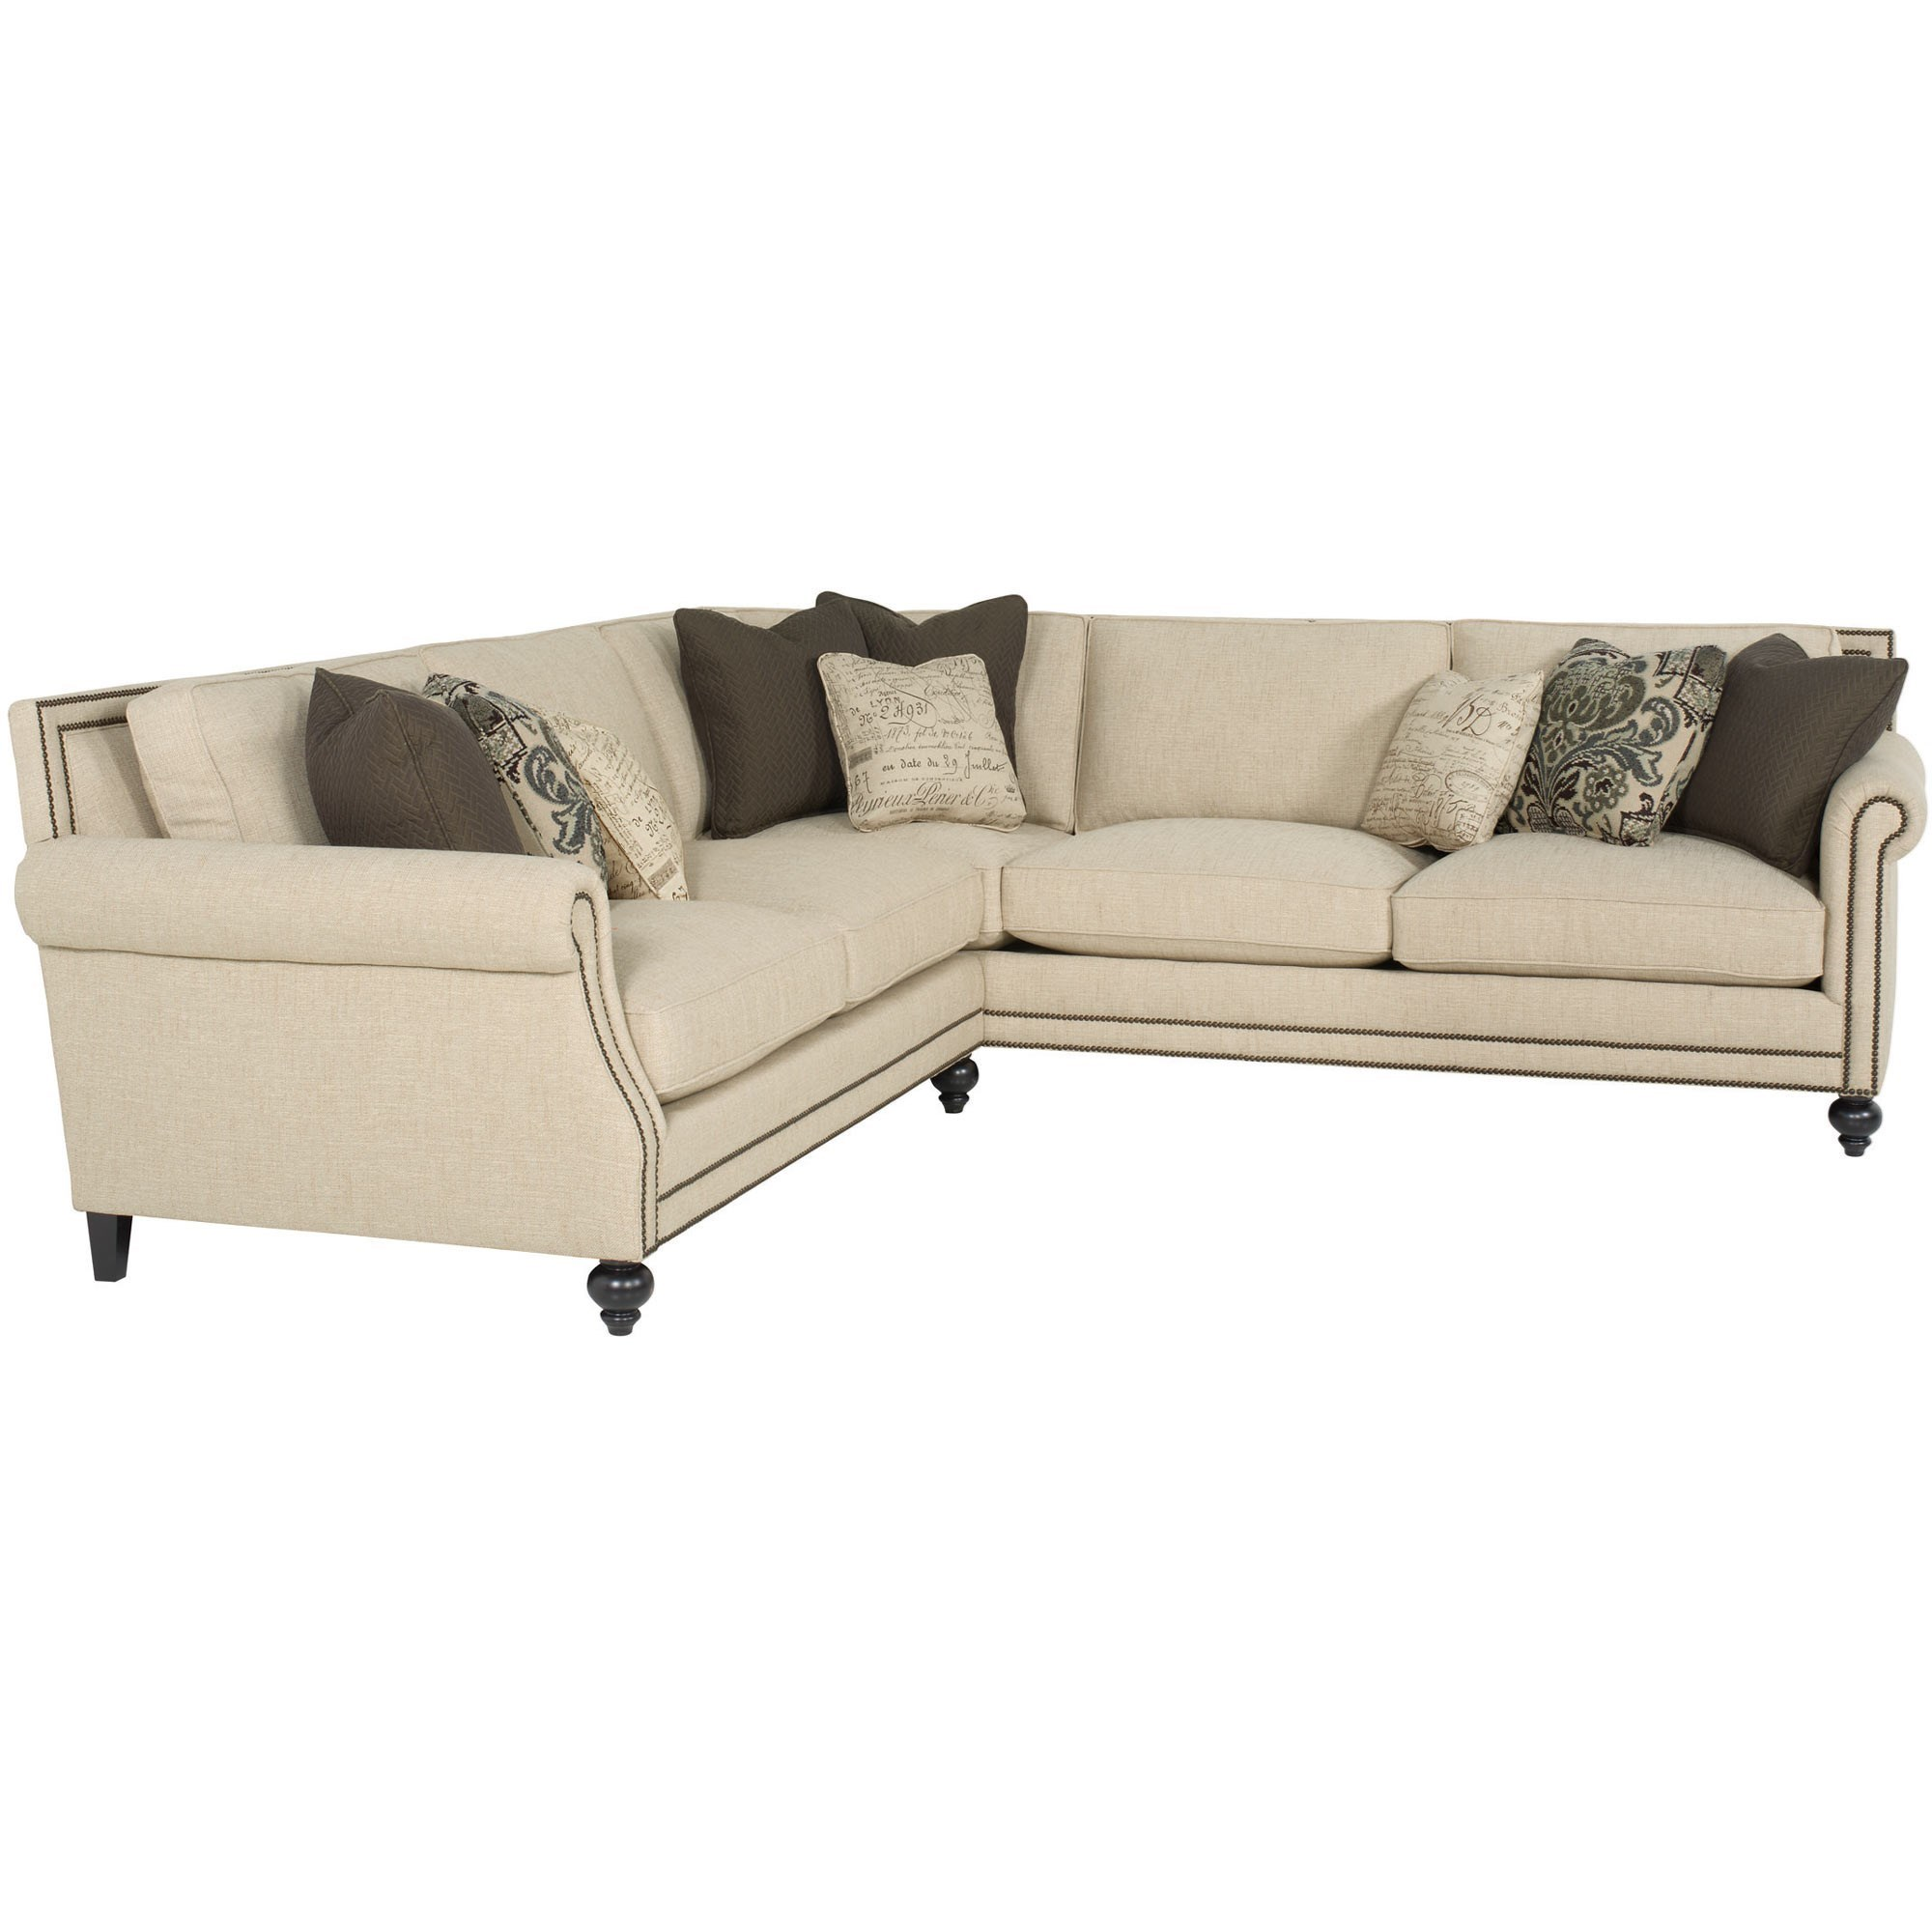 Bernhardt Brae Five Seat Sectional Sofa with Transitional ...